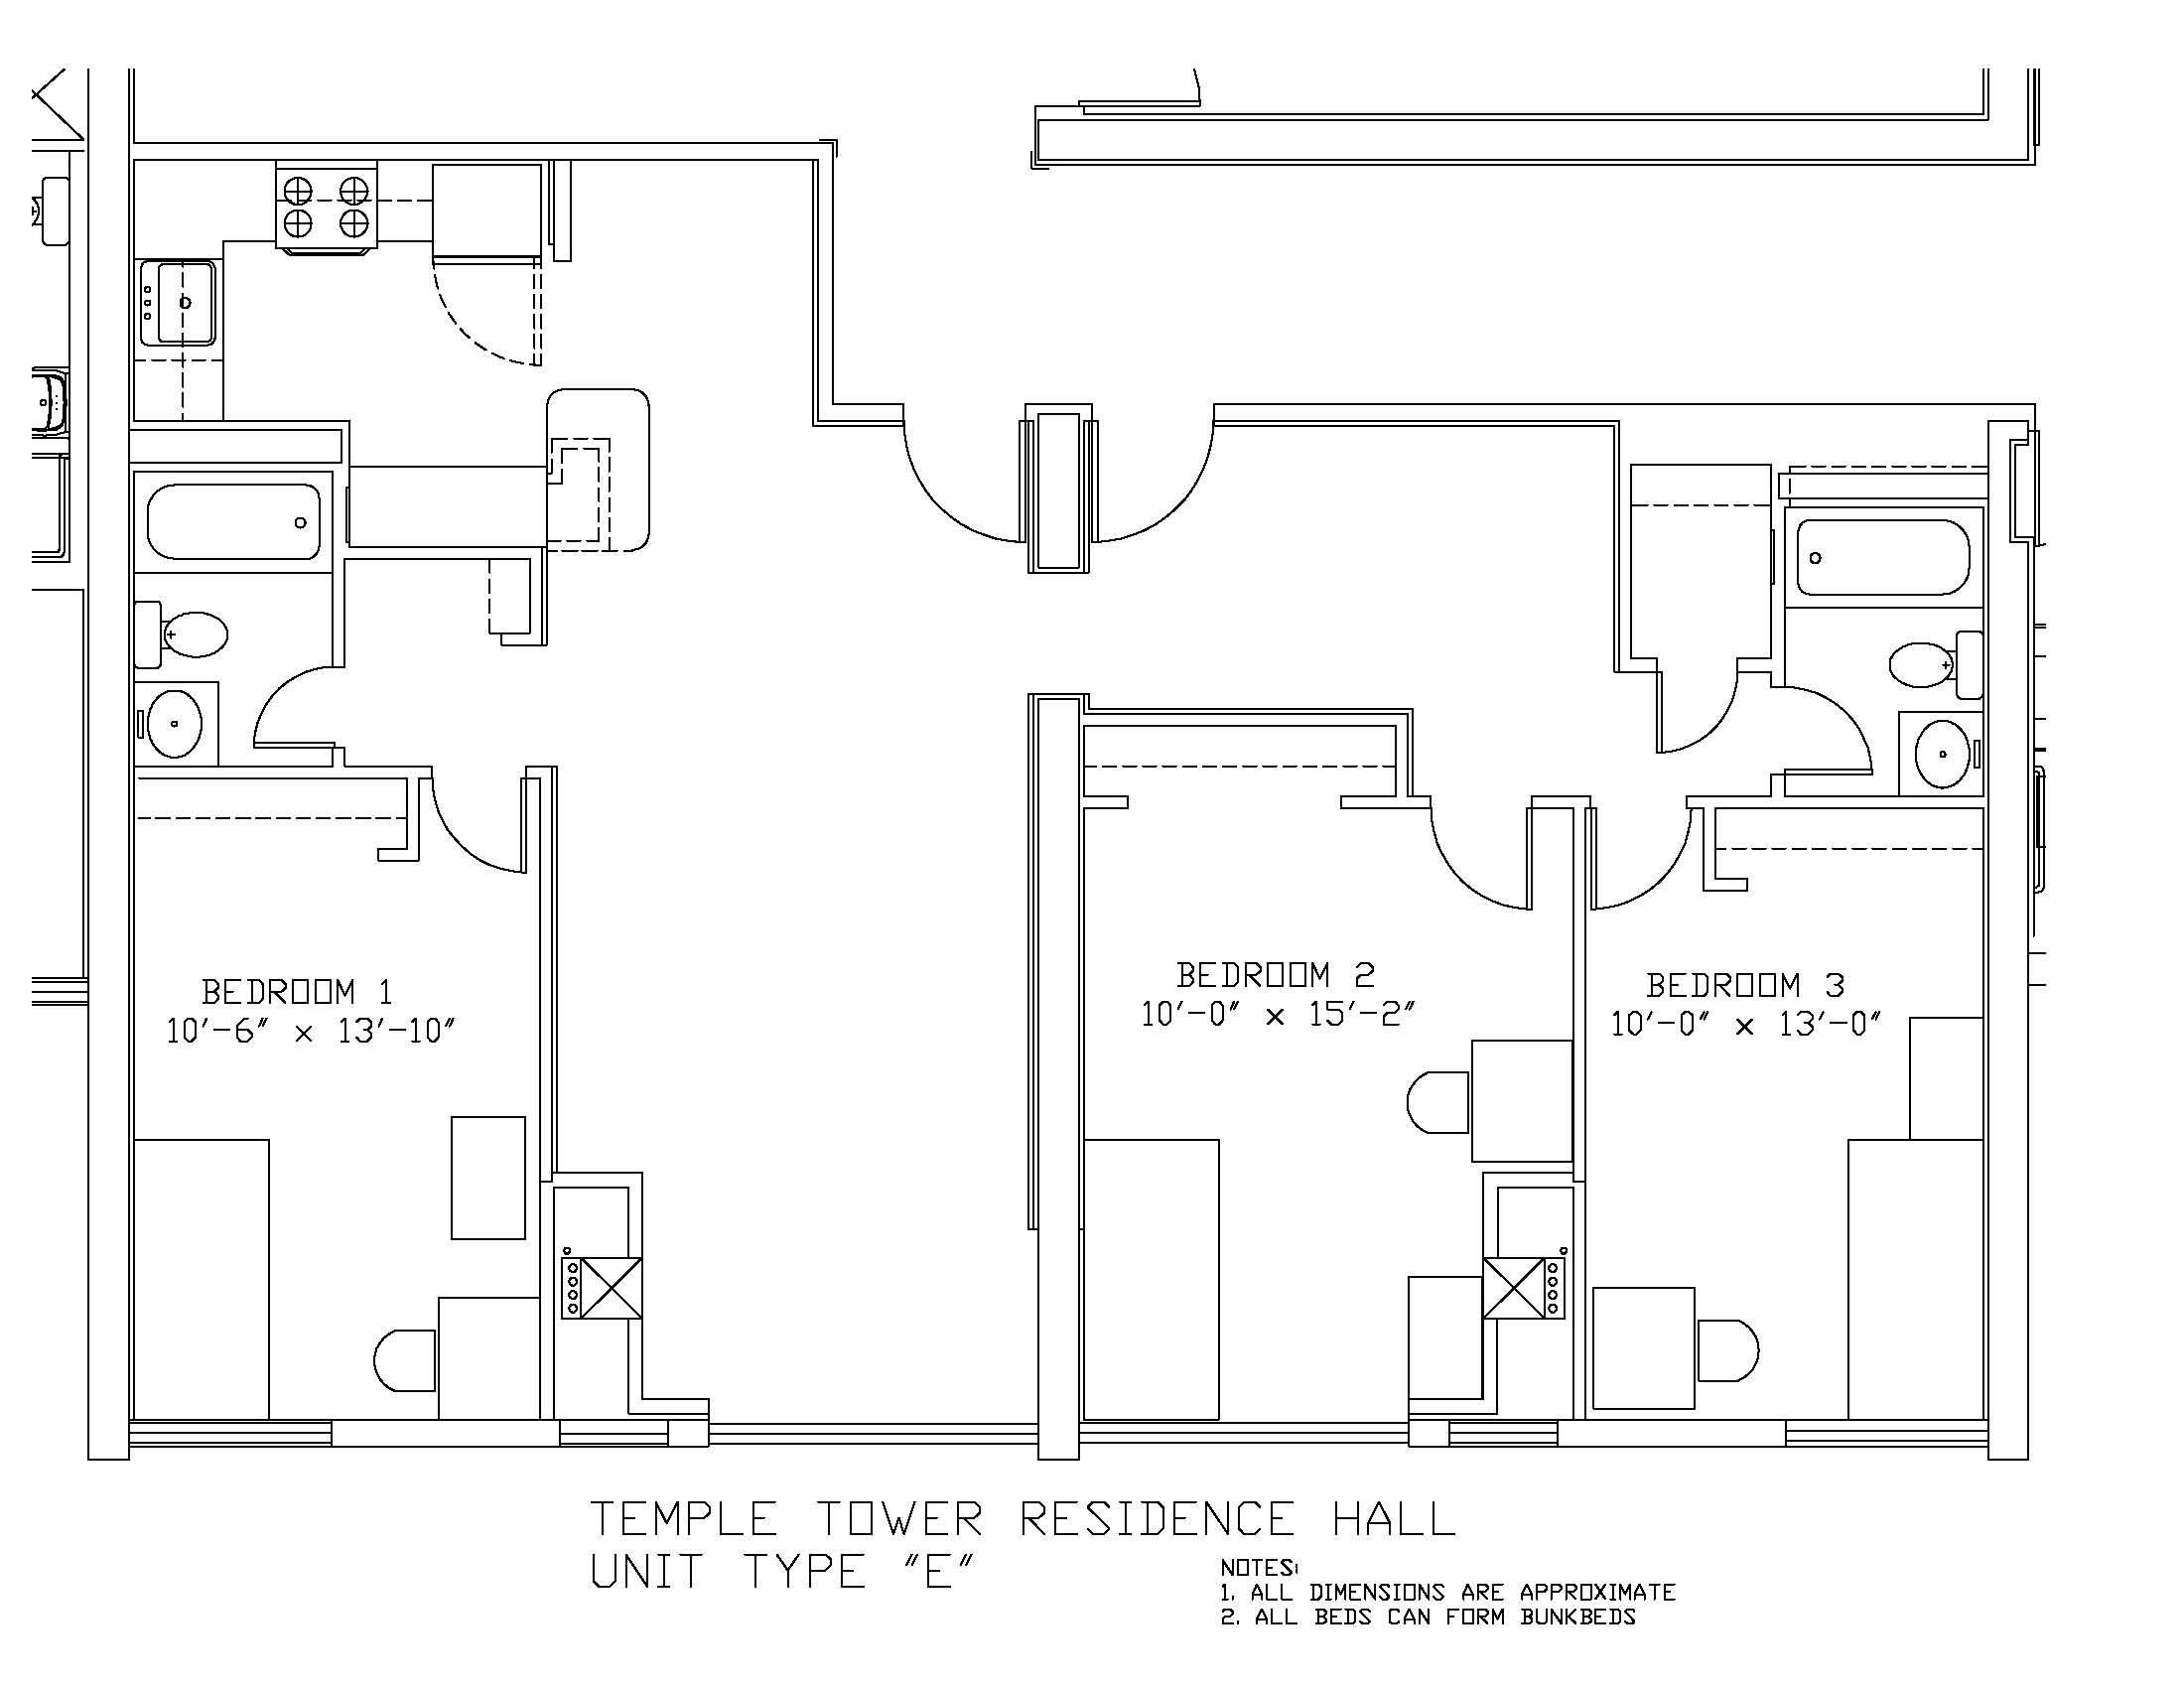 Housing Floor Plans Layout Temple Towers University Housing And Residential Life